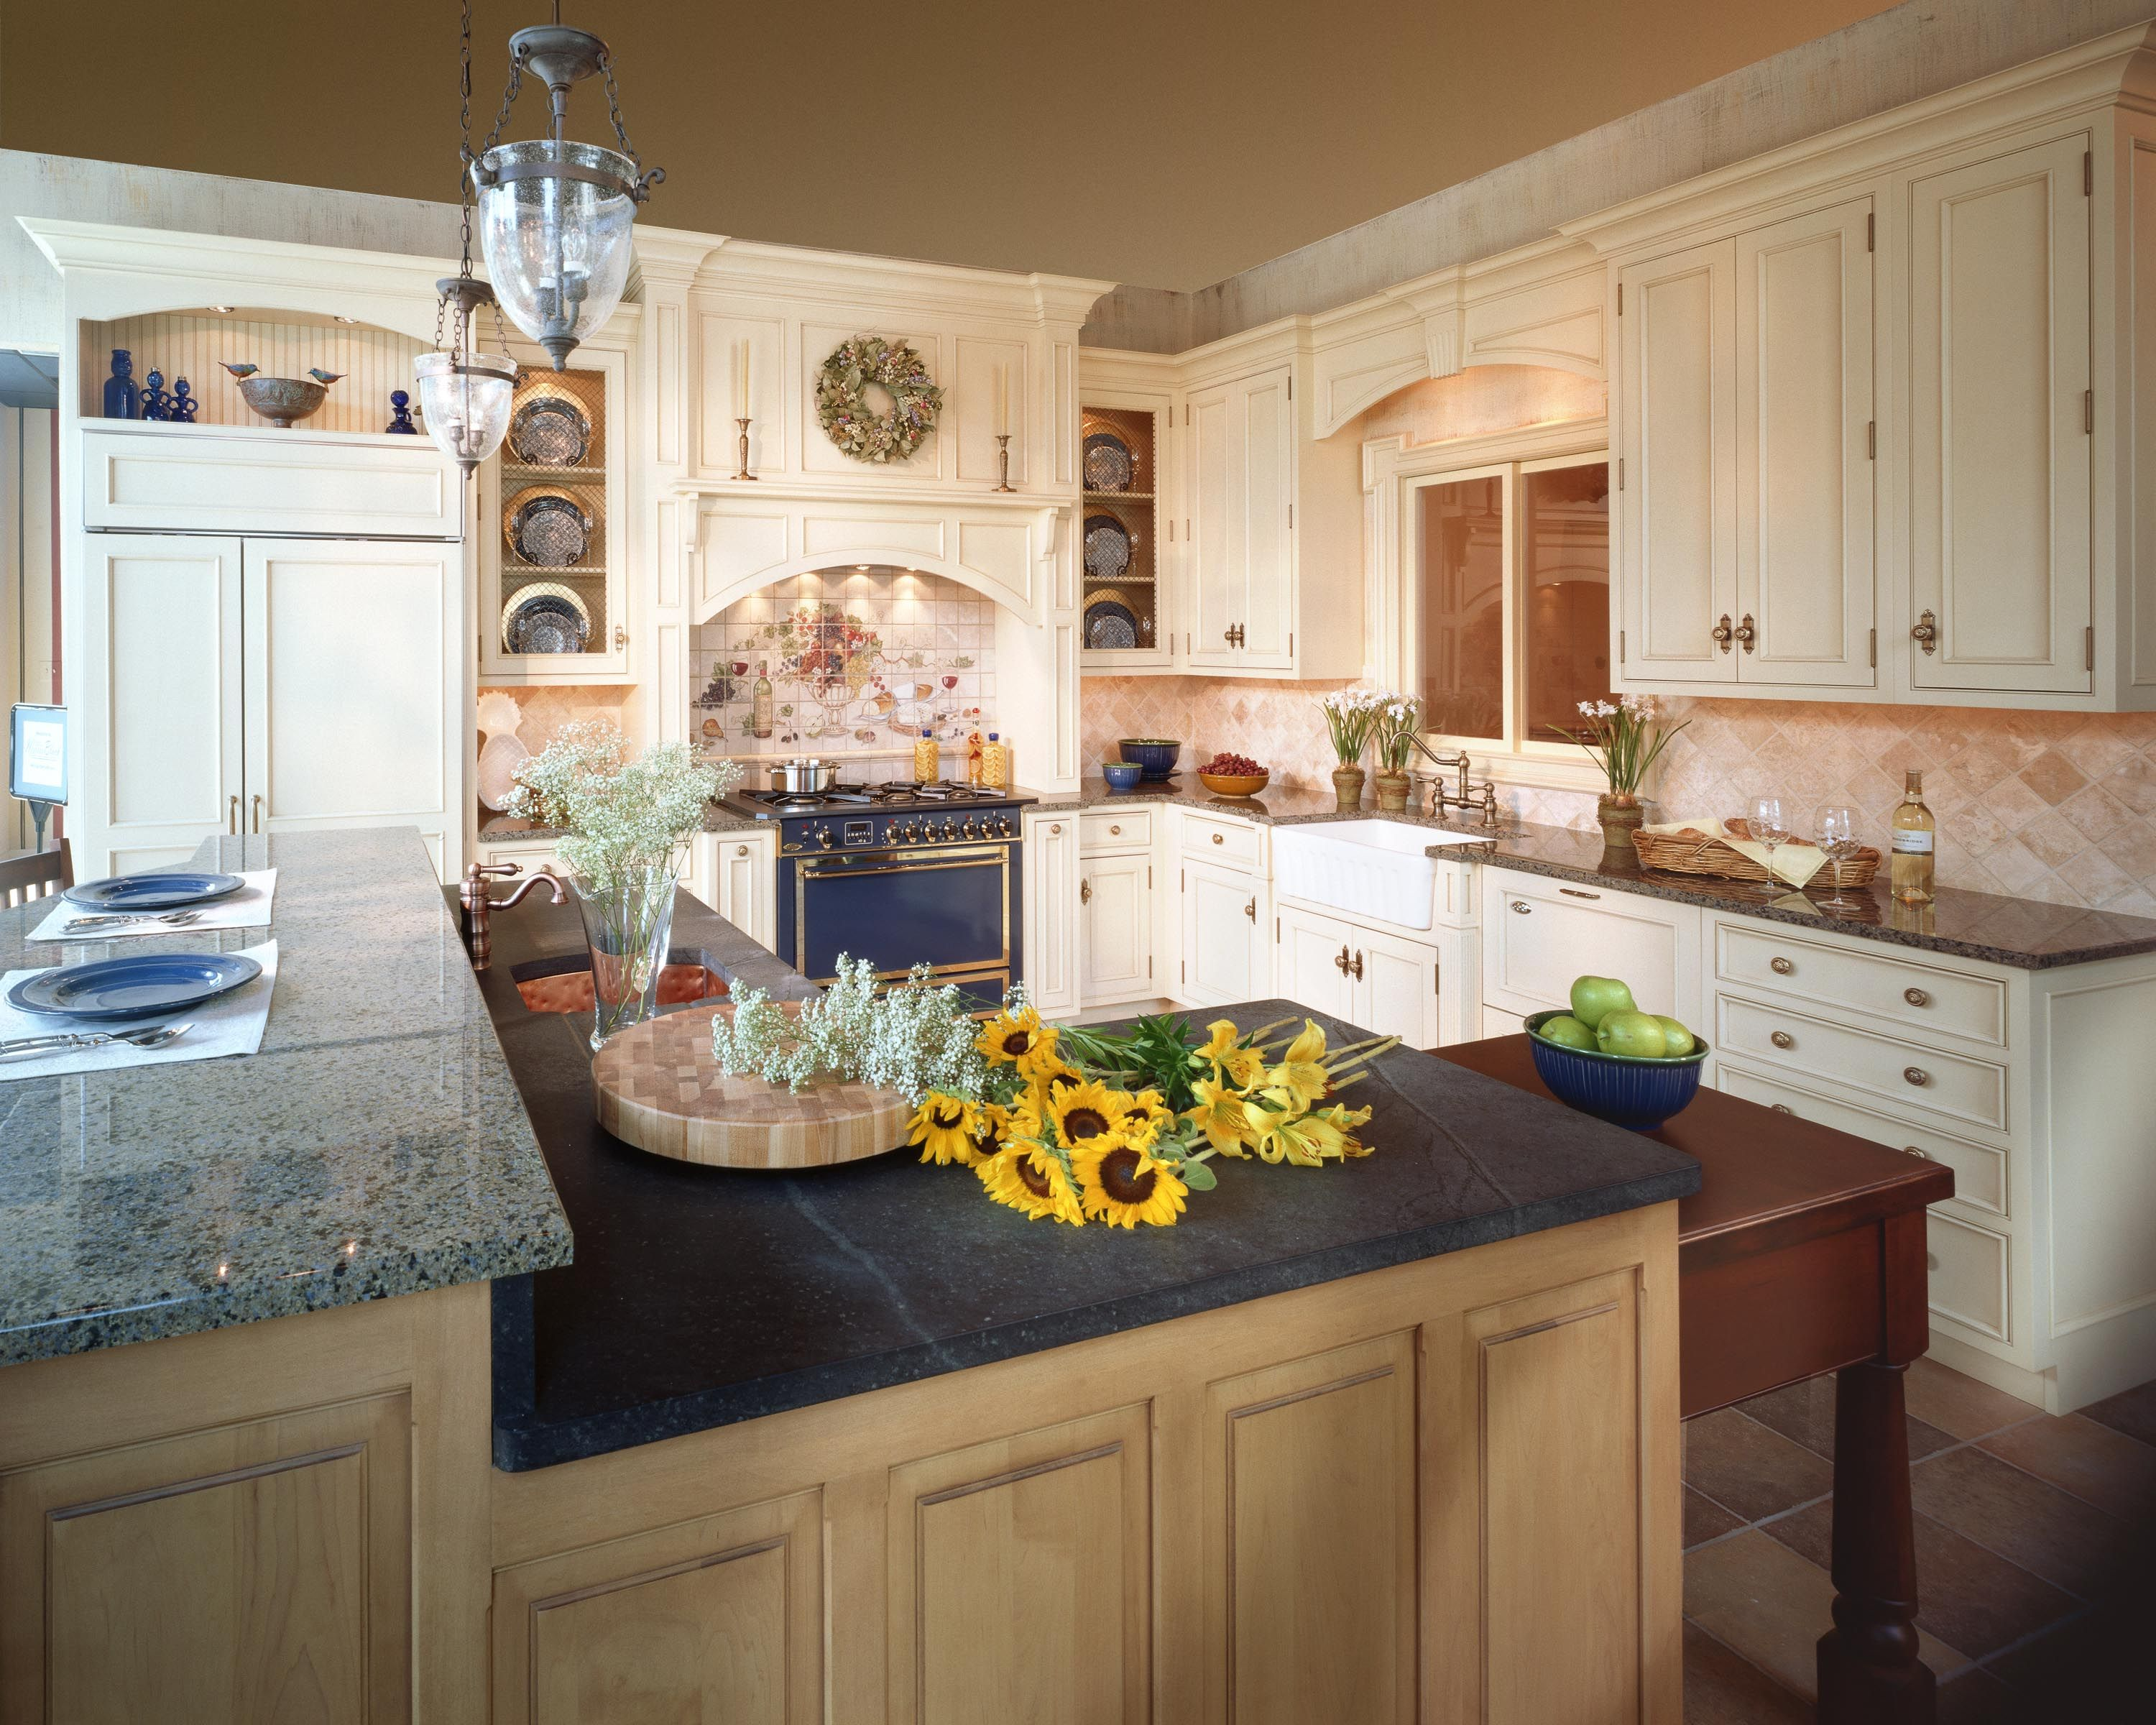 a vintage blue oven is the focal point of this kitchen! http://www